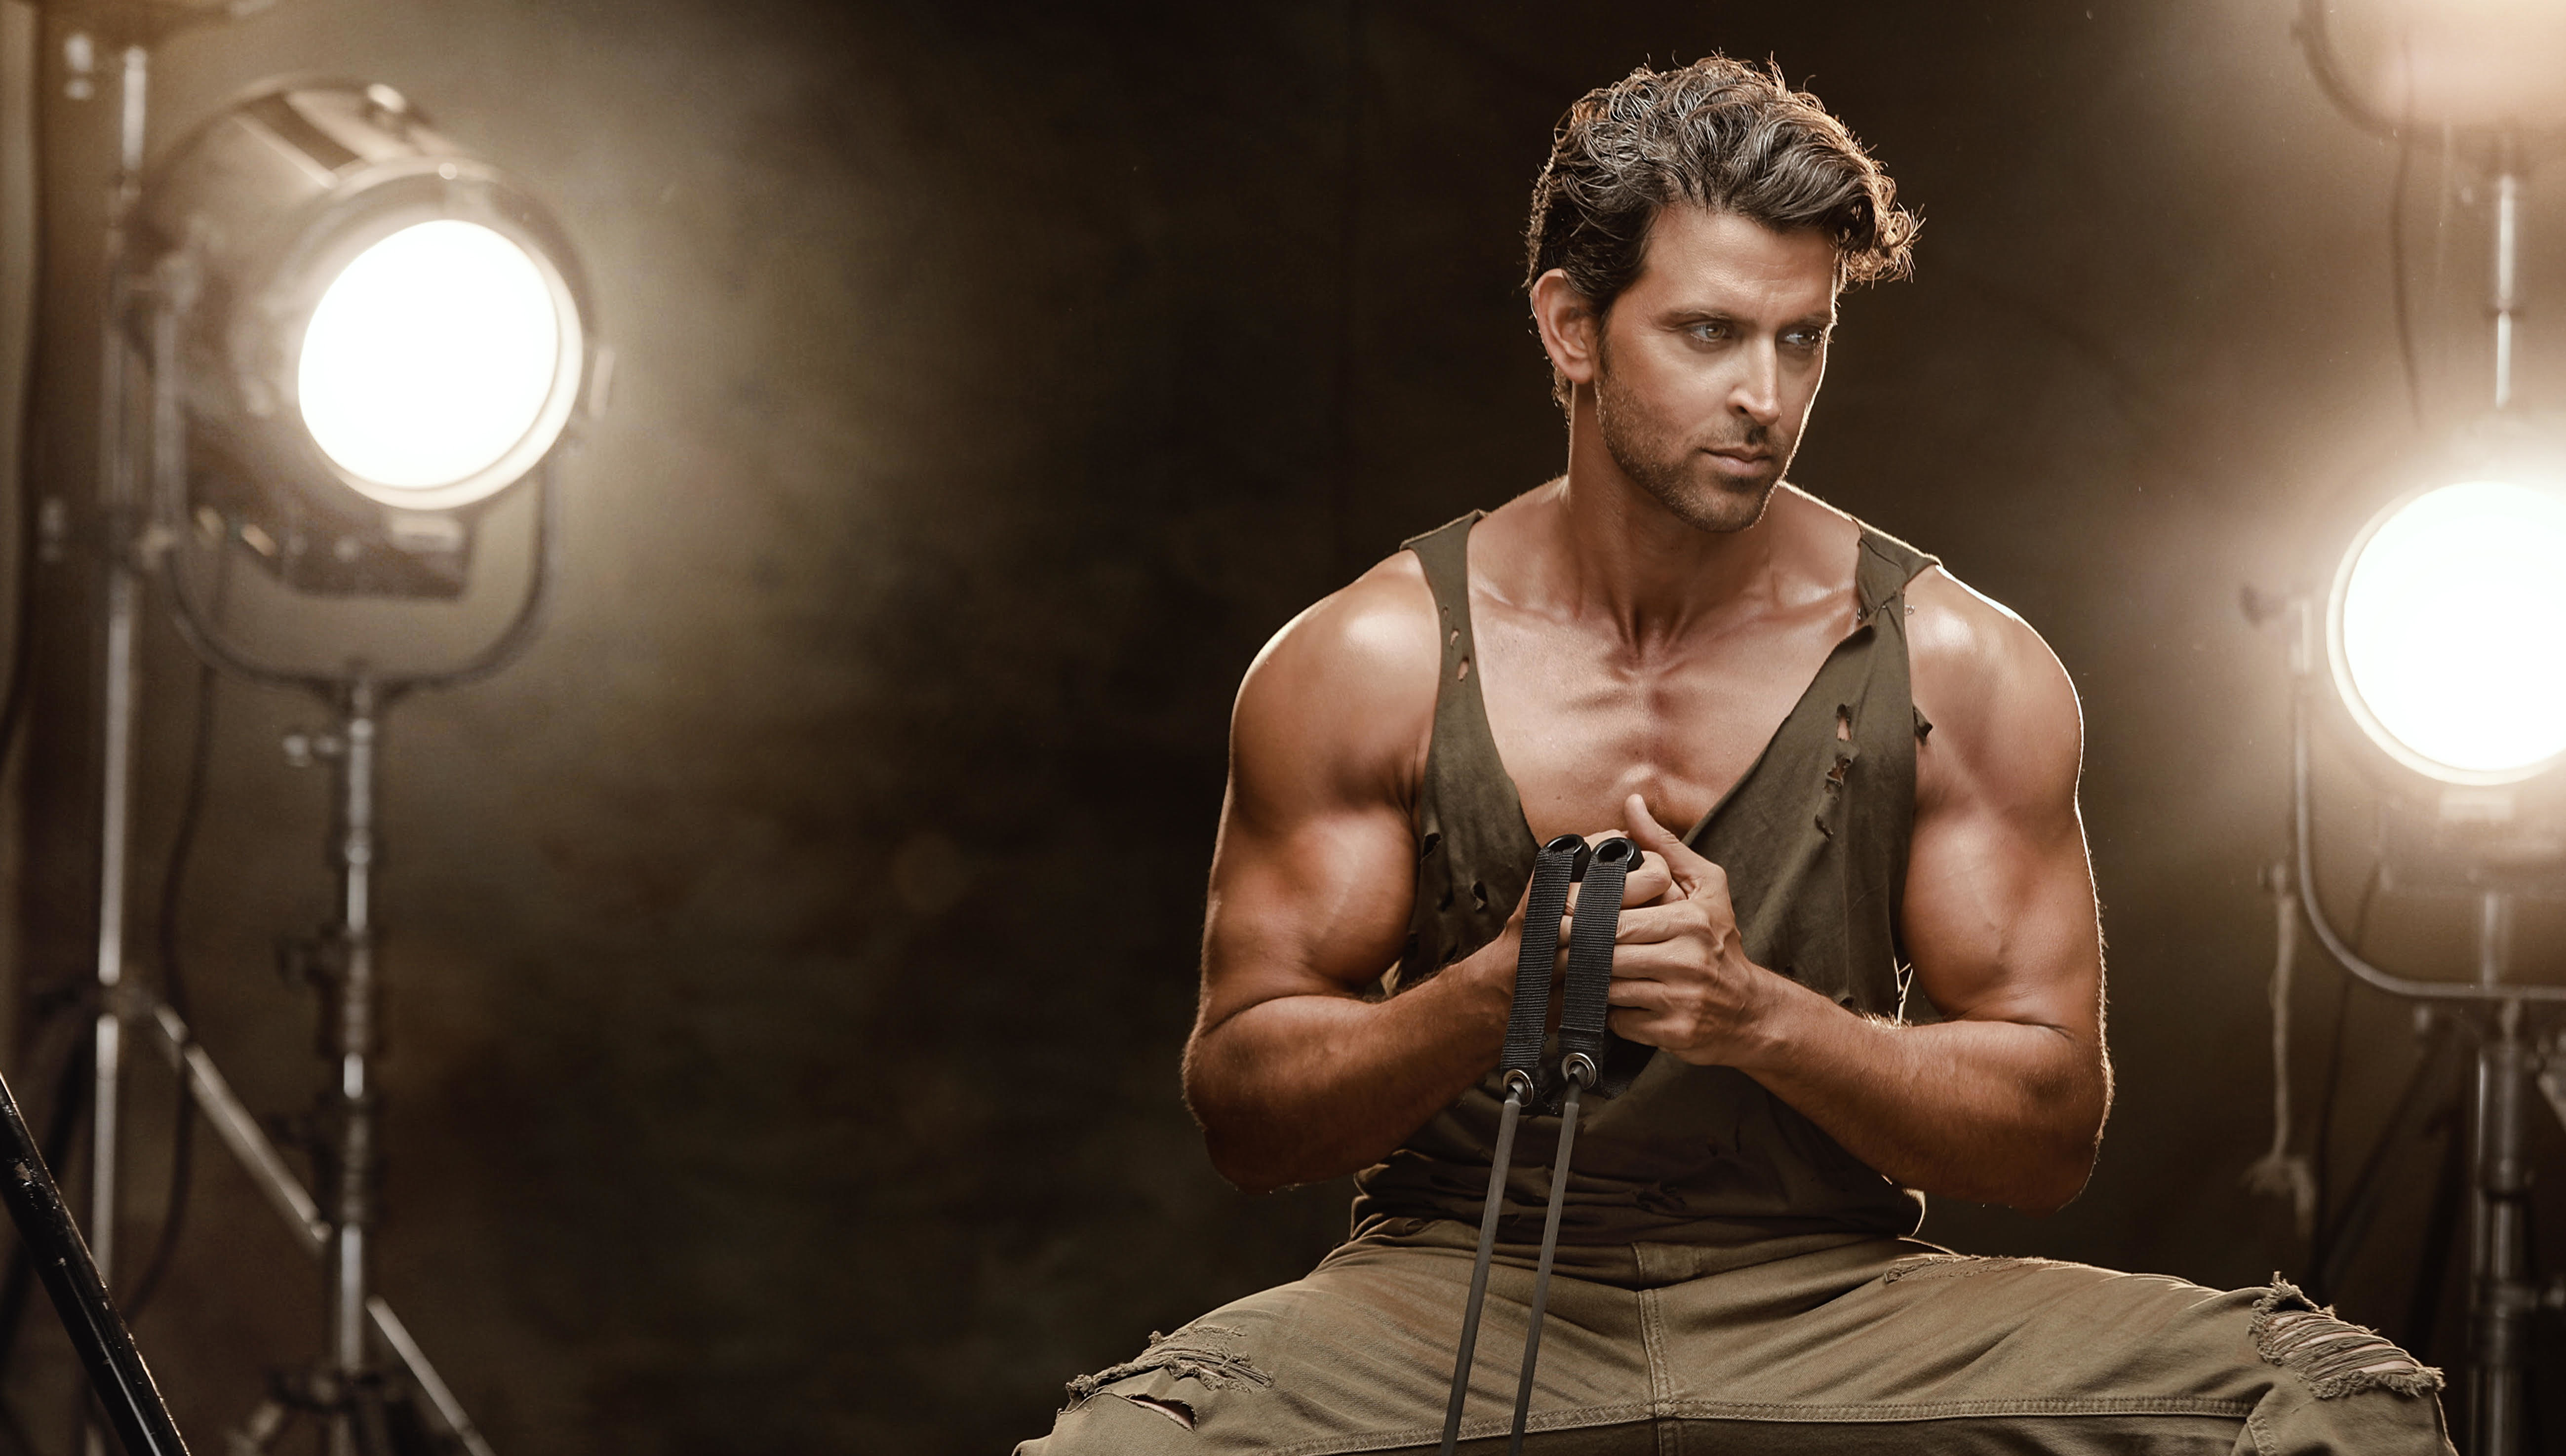 Hrithik Roshan Says No To Weight Training For His